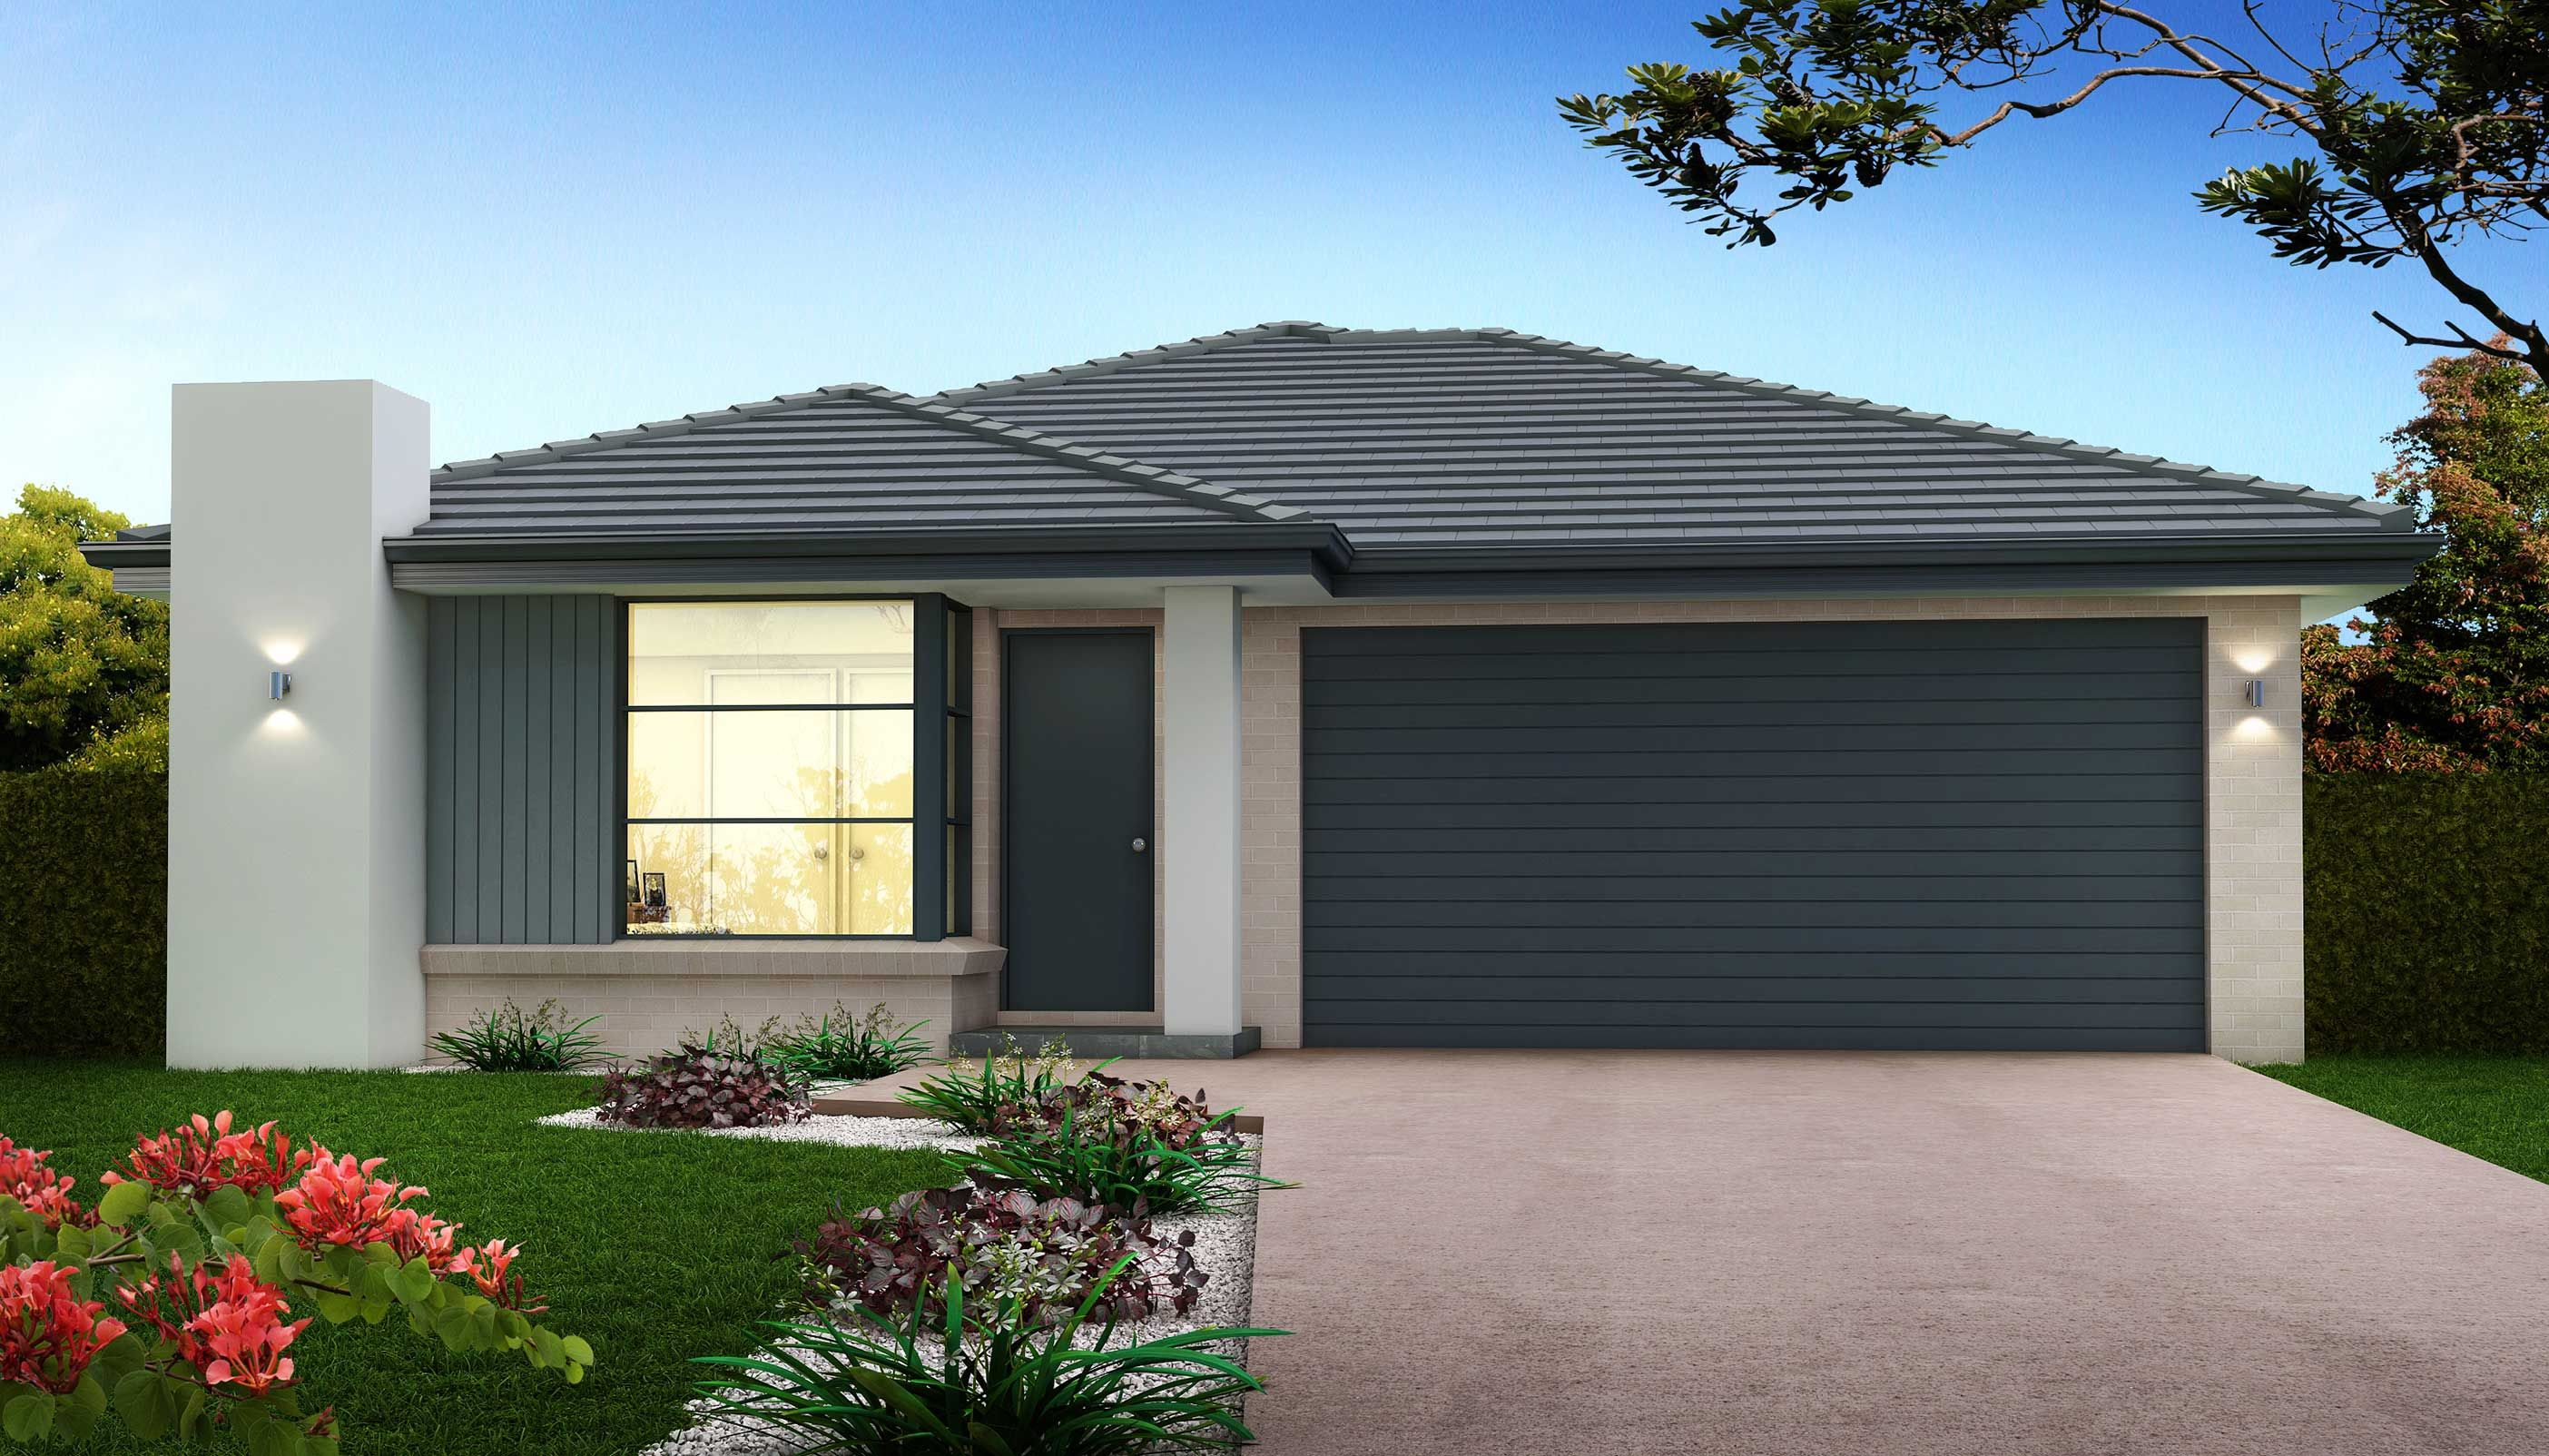 New Homes Sydney | Best New Home Designs U0026 New Home Builders